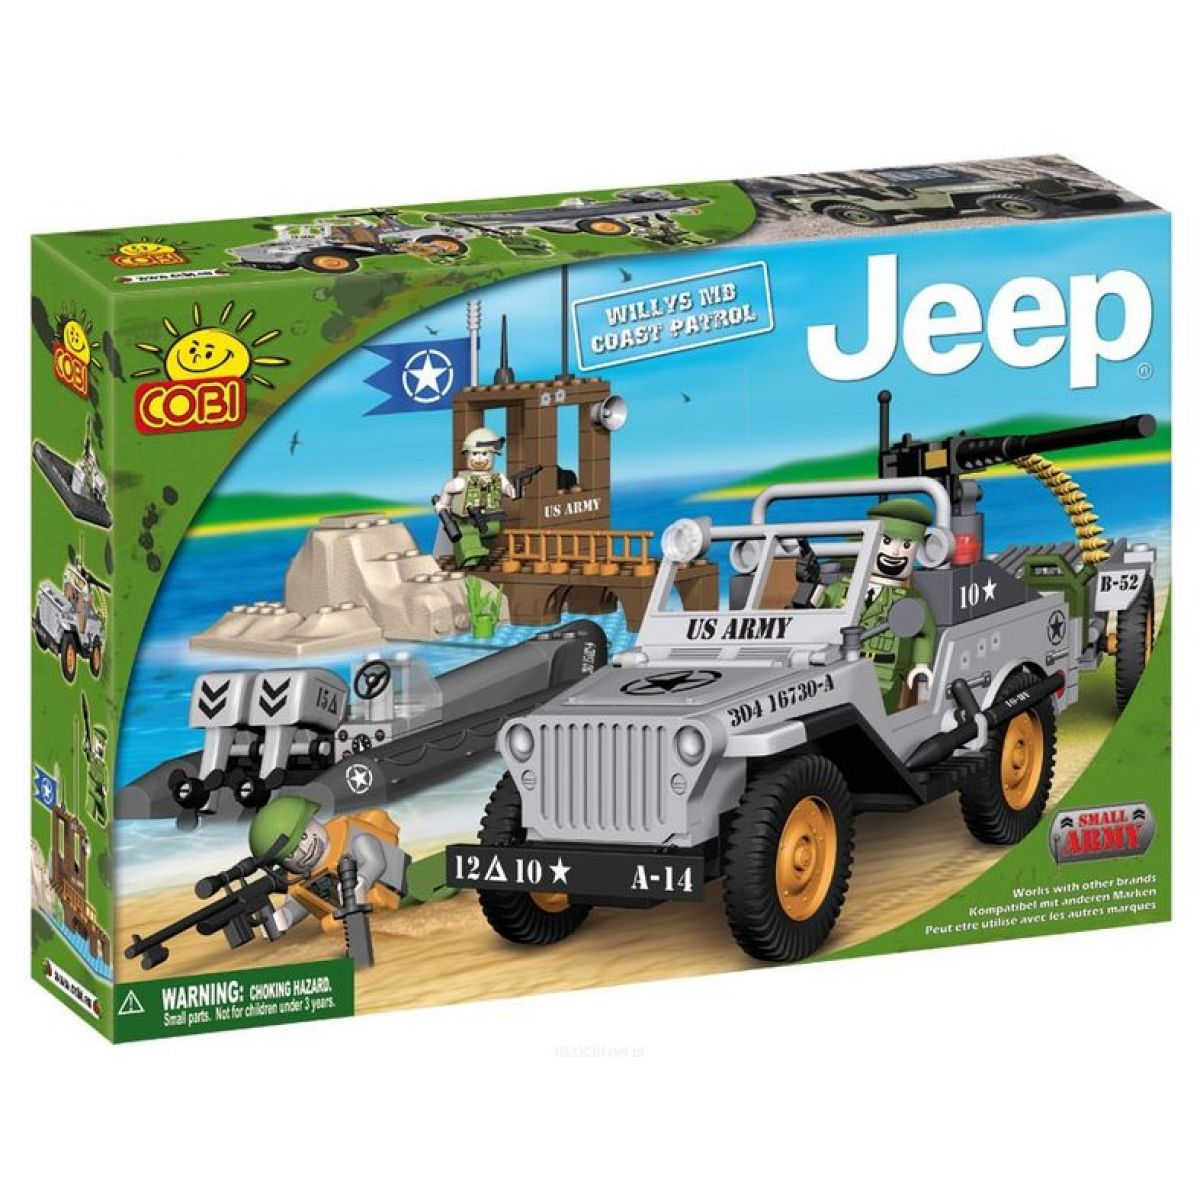 Cobi 24251 Jeep Willys s pontonem